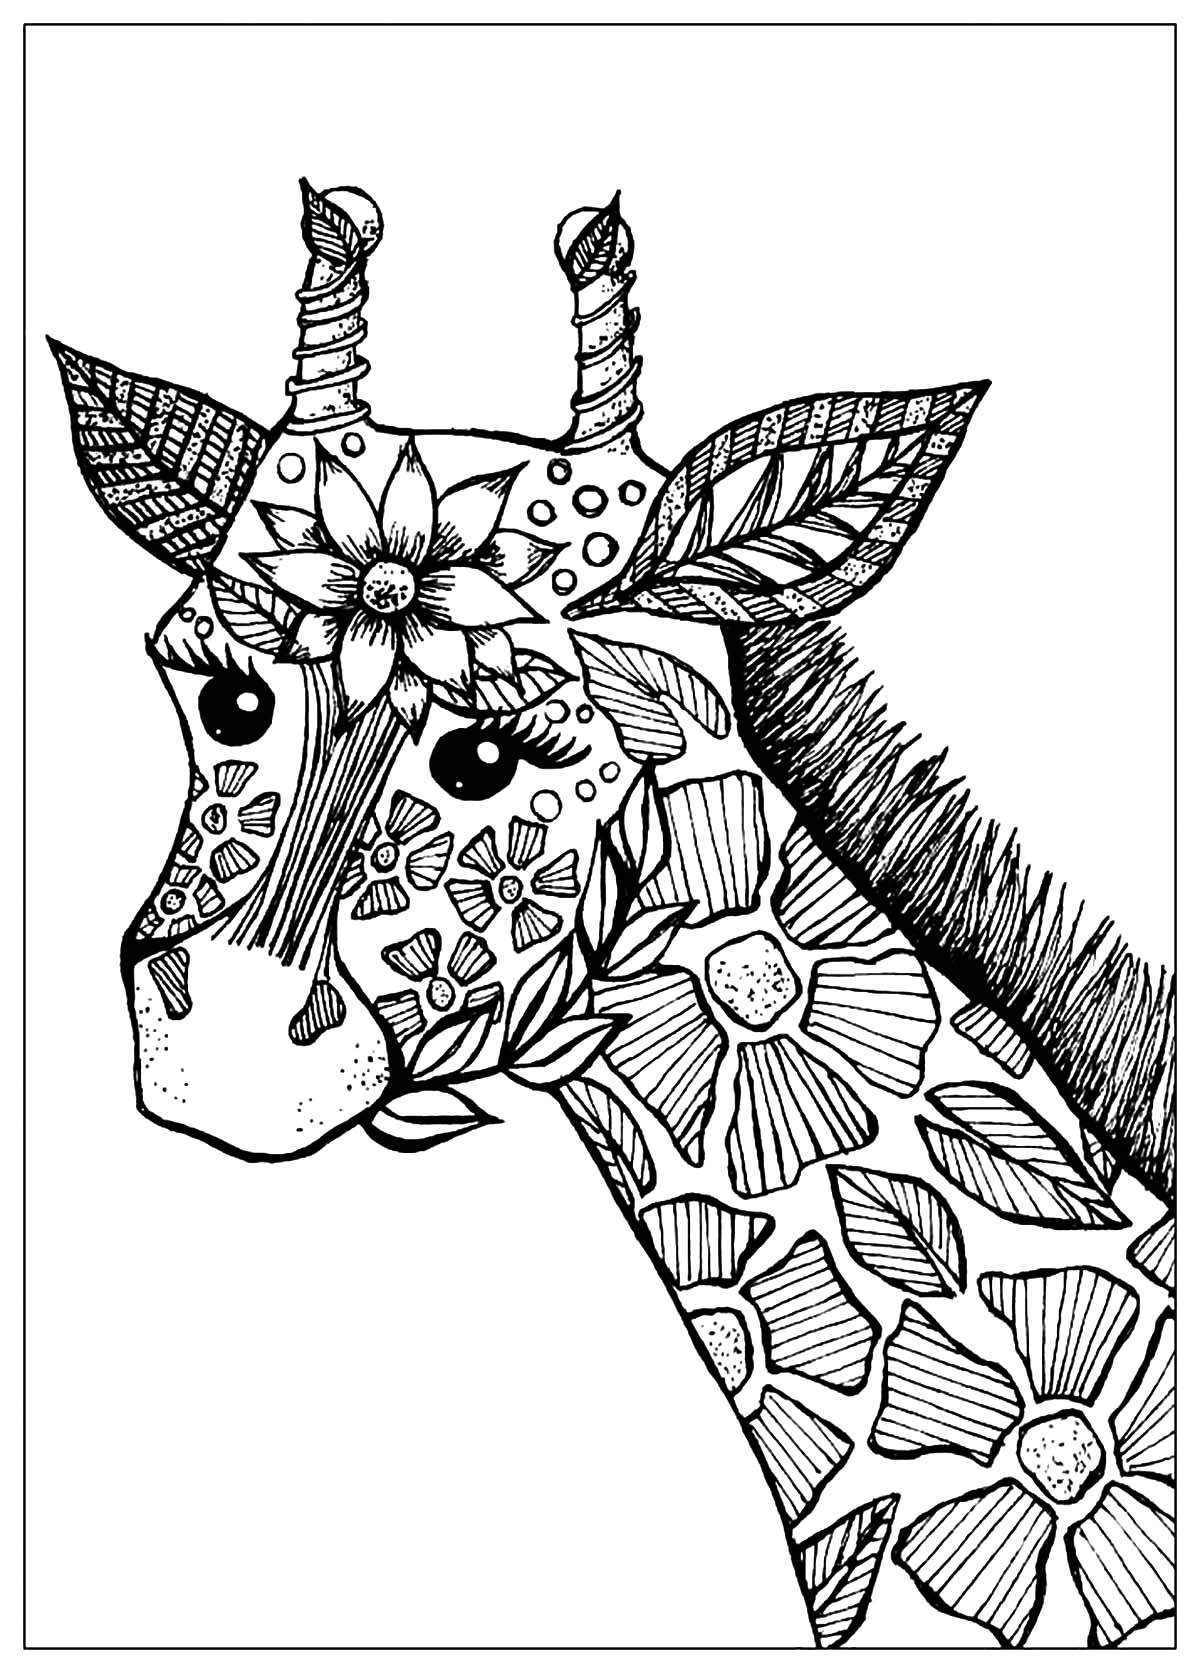 colouring pages of giraffe giraffe head with flowers giraffes adult coloring pages of colouring pages giraffe